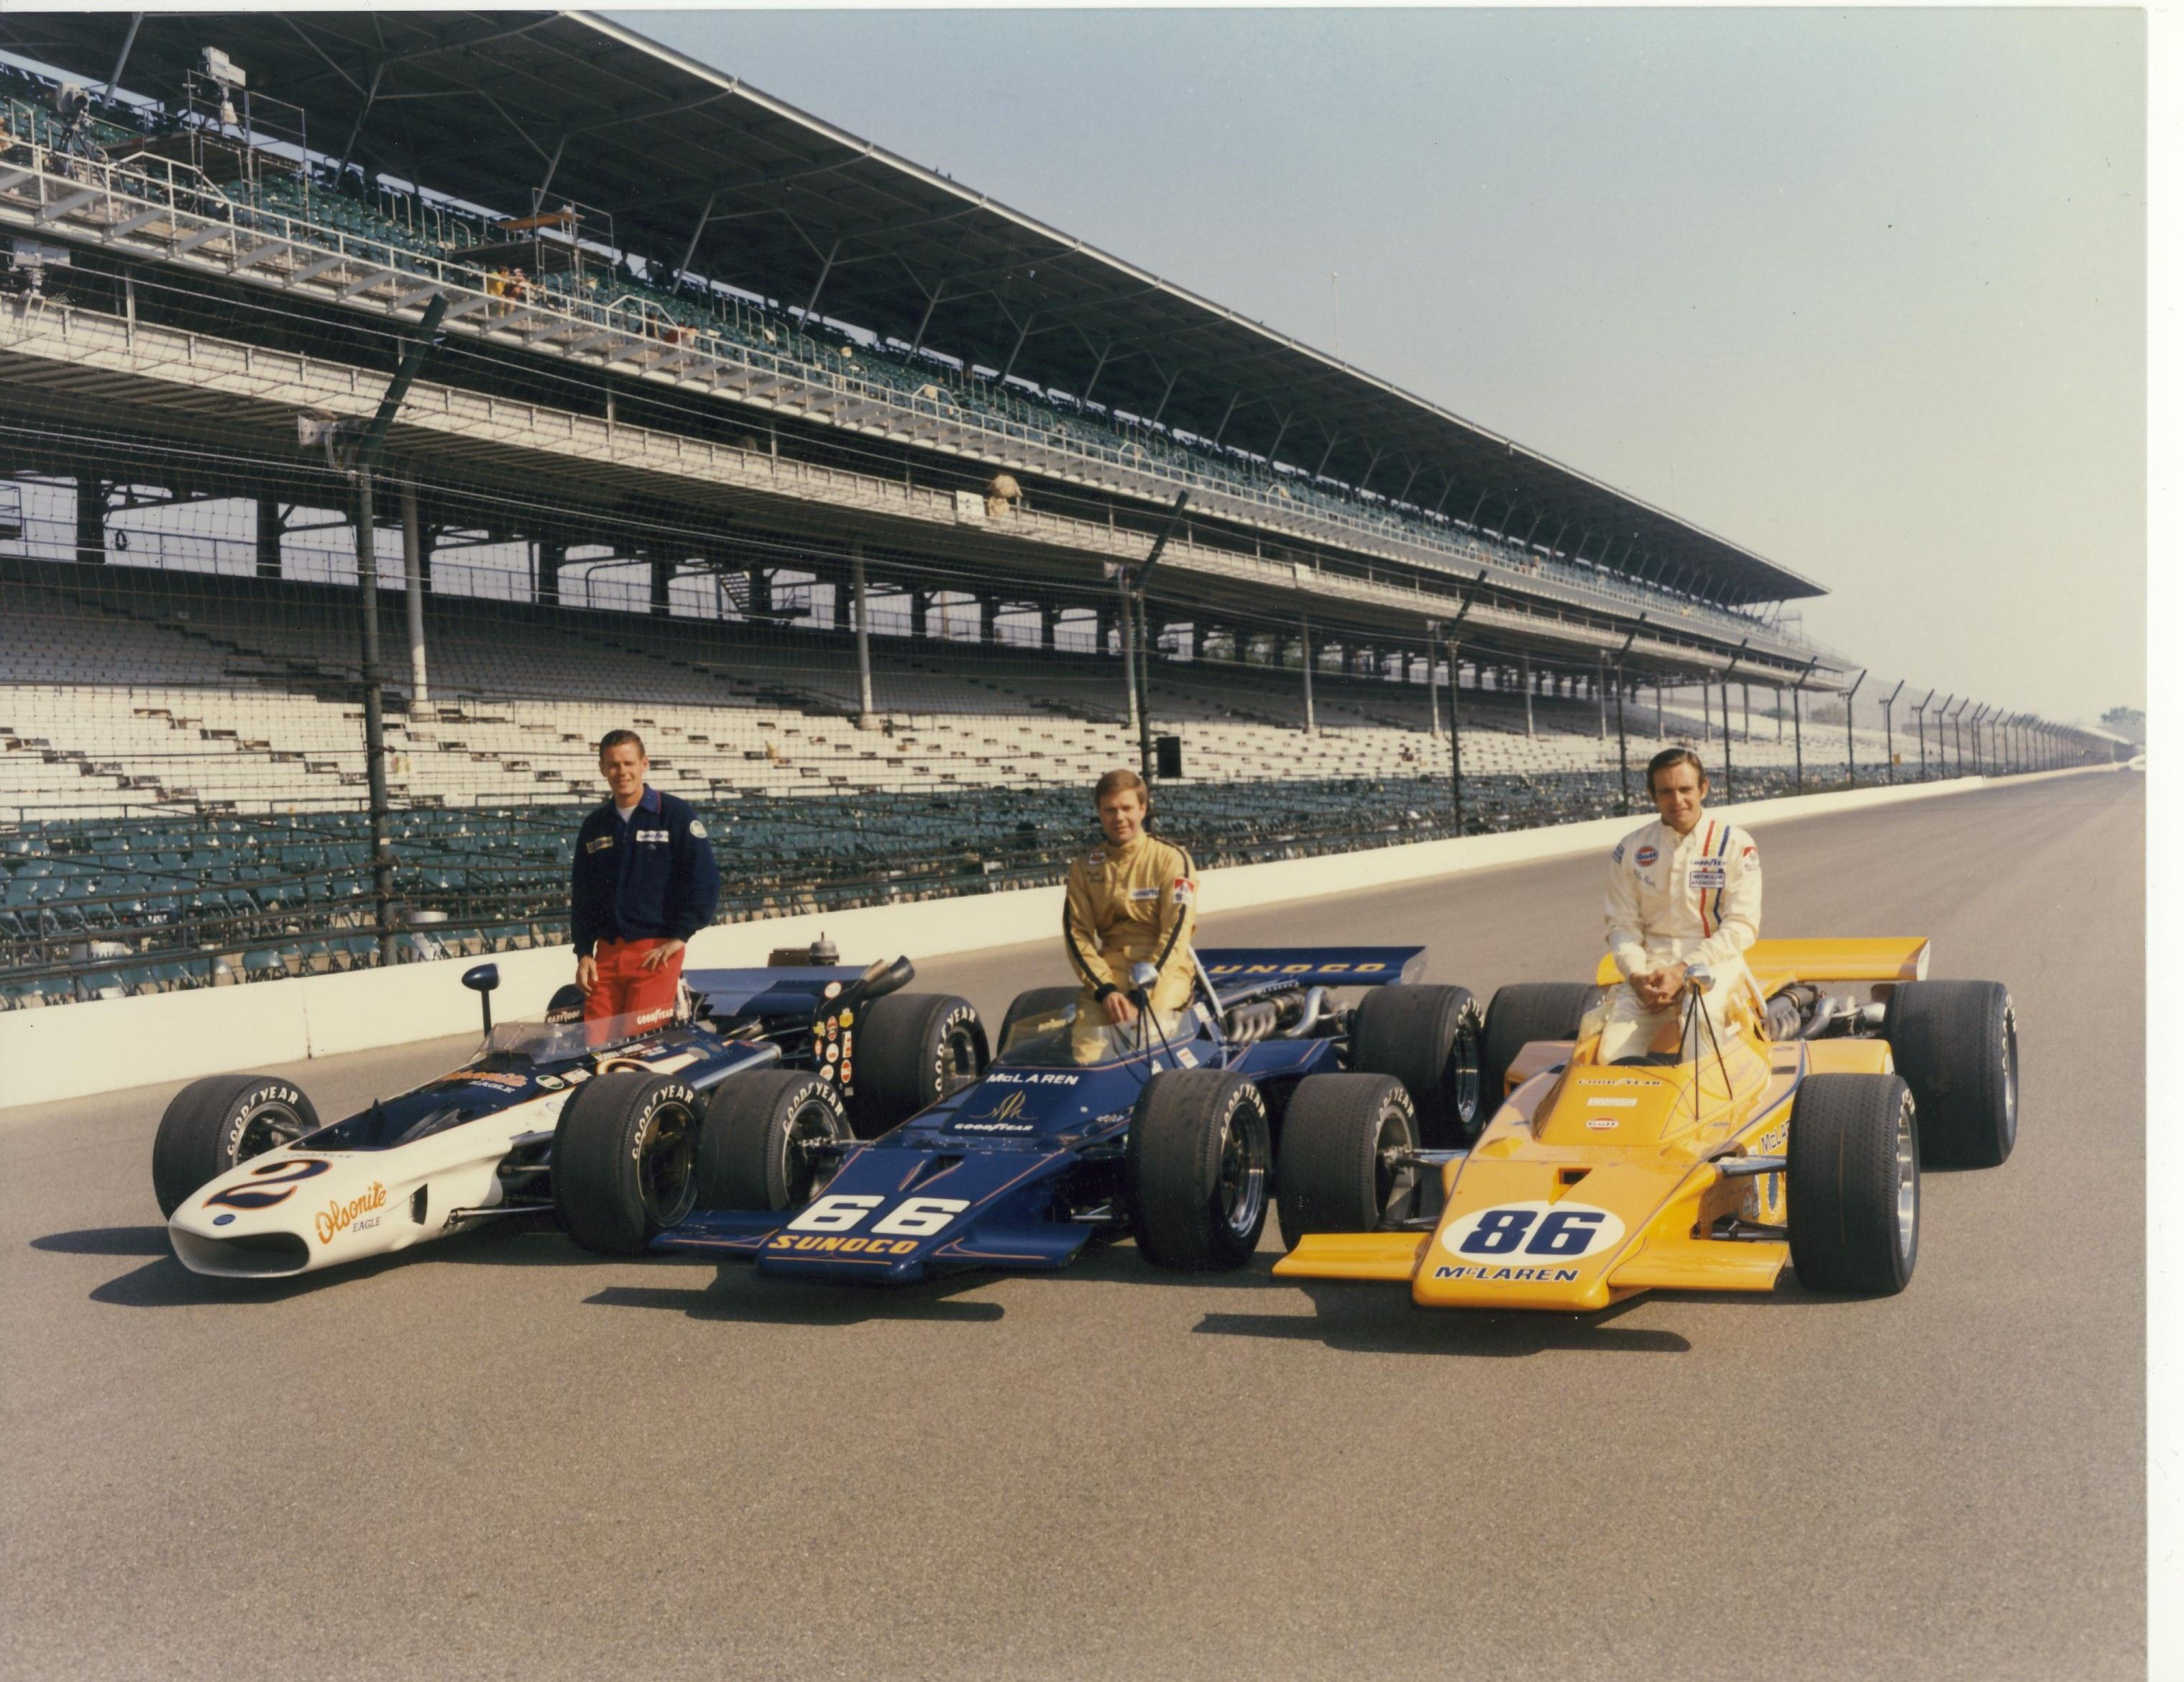 65 best Indy 500 images on Pinterest | Indy cars, Race cars and ...